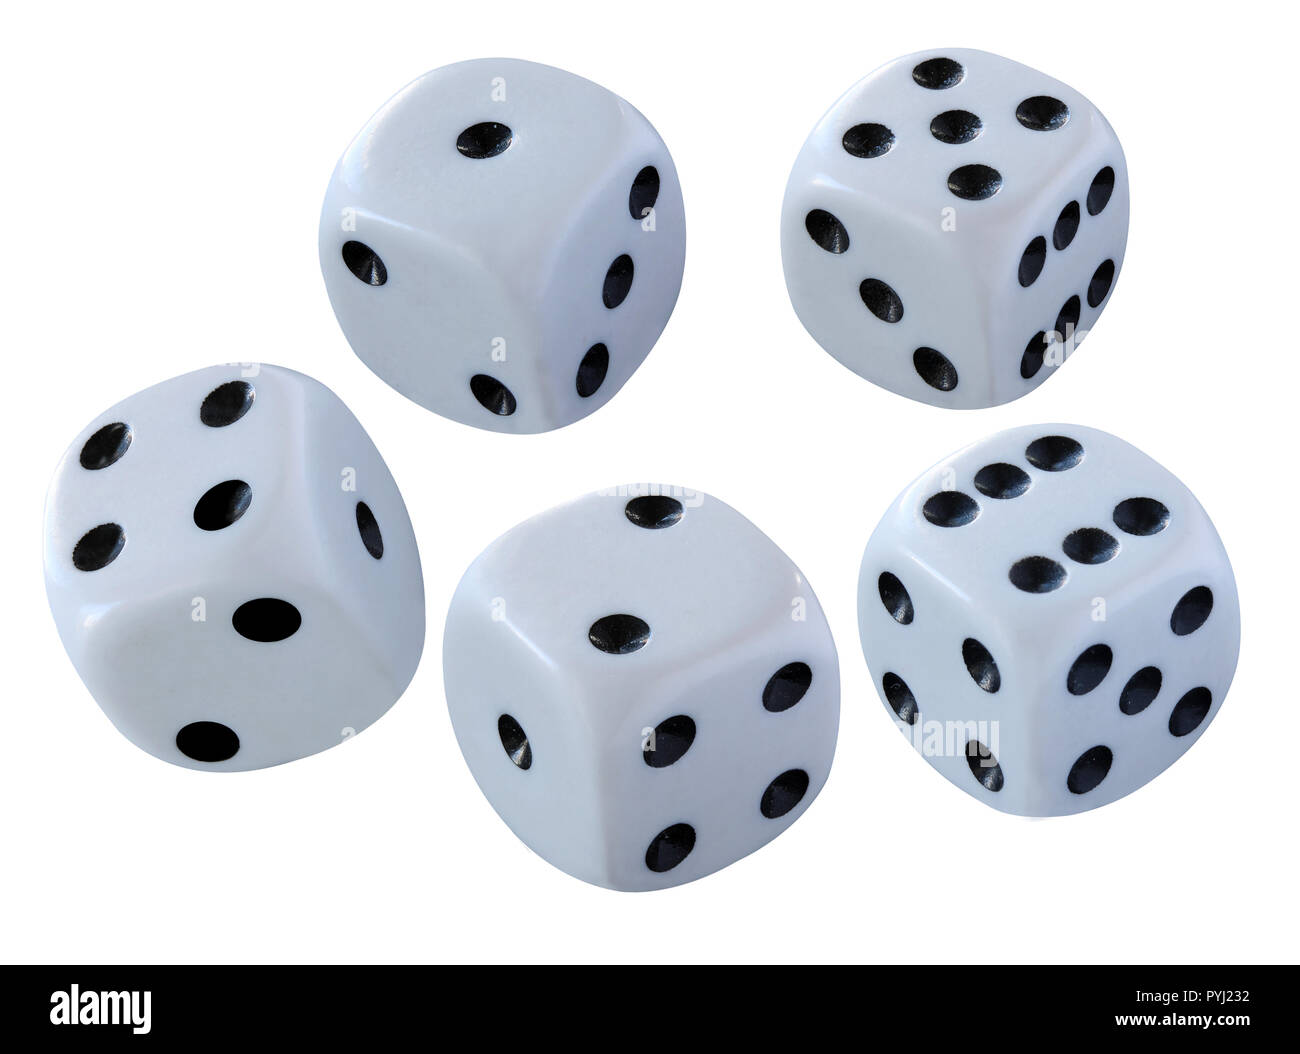 White dices isolated on white background - thrown in a craps game, yatsy or any kind of dice game - Stock Image